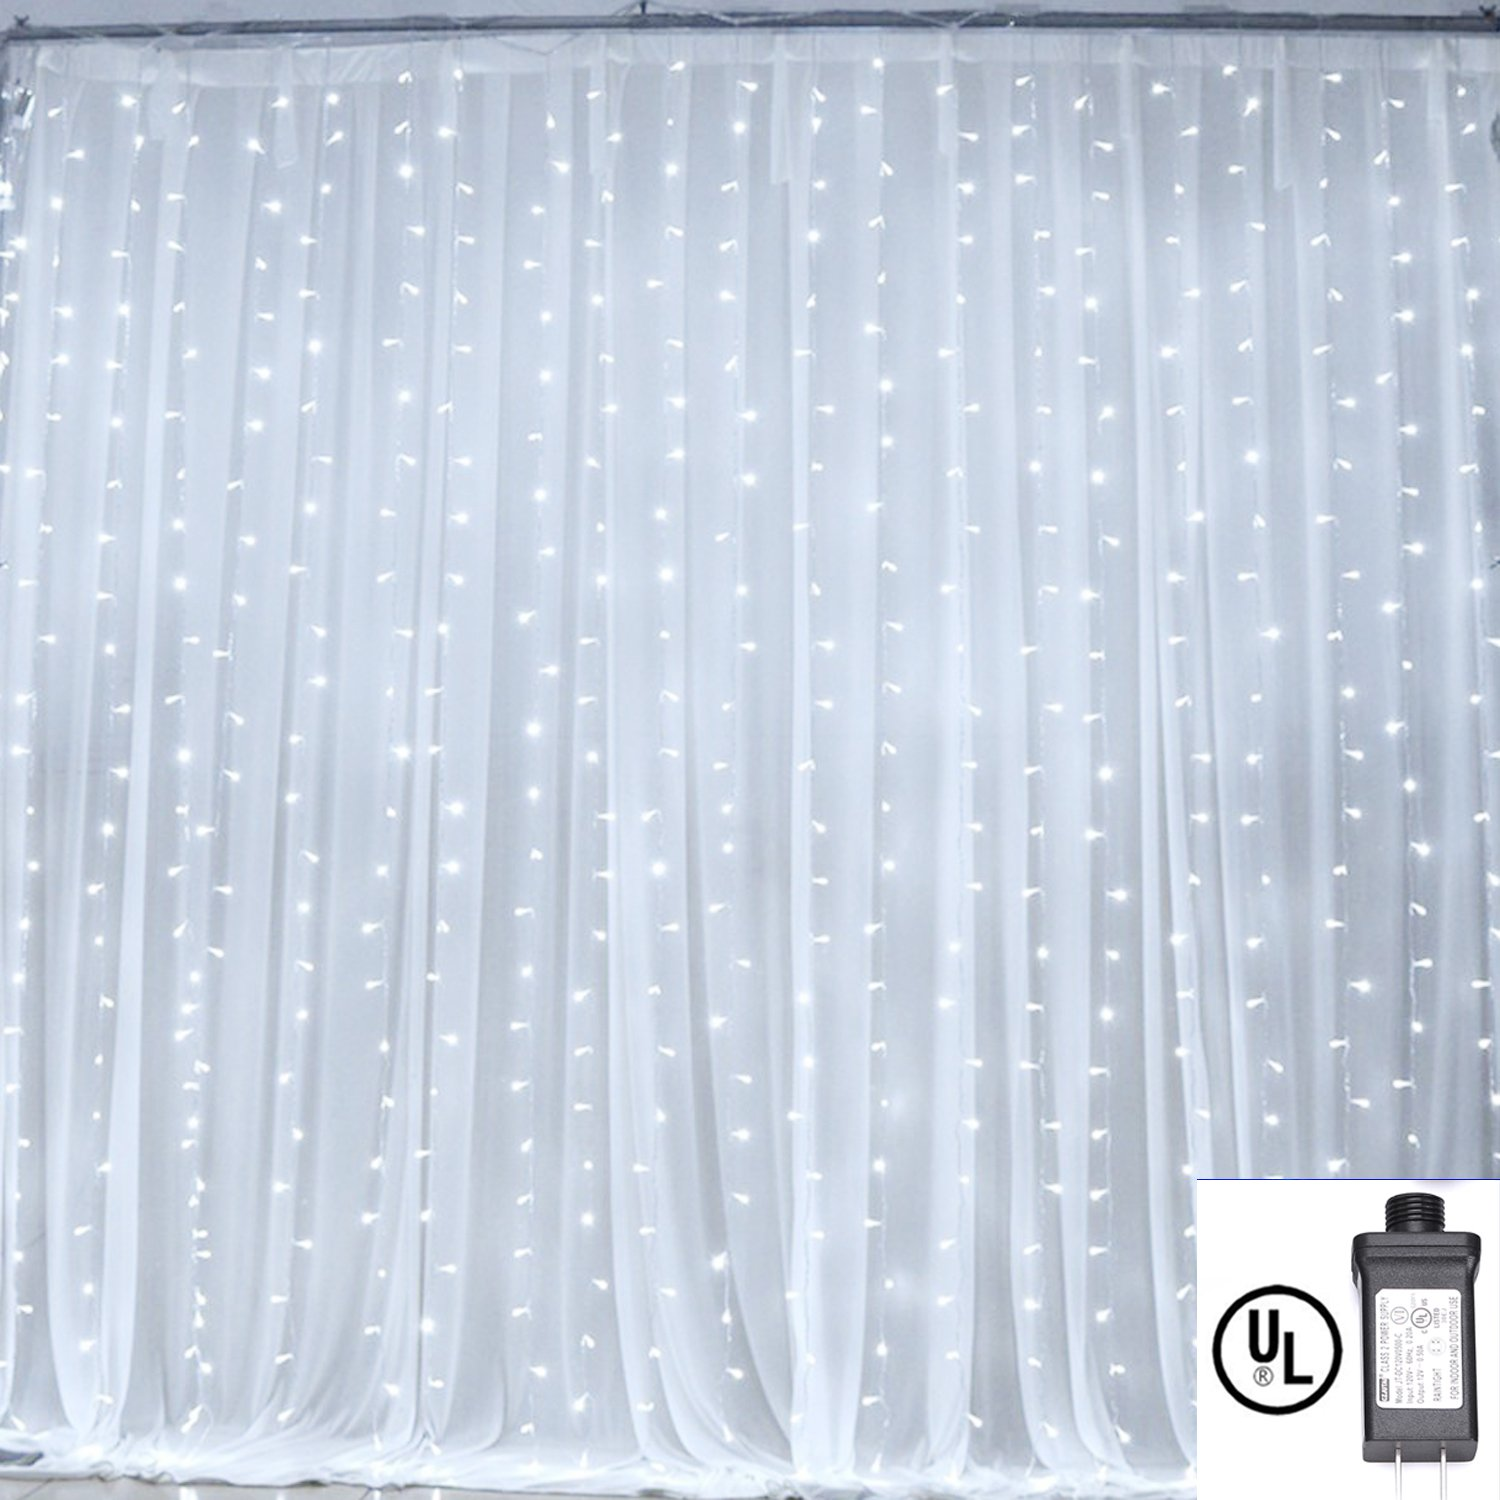 Curtain Lights,Bienna 3M x 3M /10 ft x 10 ft 304 LED UL Listed Plug In Icicle Twinkle Fairy String Lighting [Waterproof] [8 Modes] for Christmas Window Weddings Bedroom Indoor Outdoor Home Party-Cool